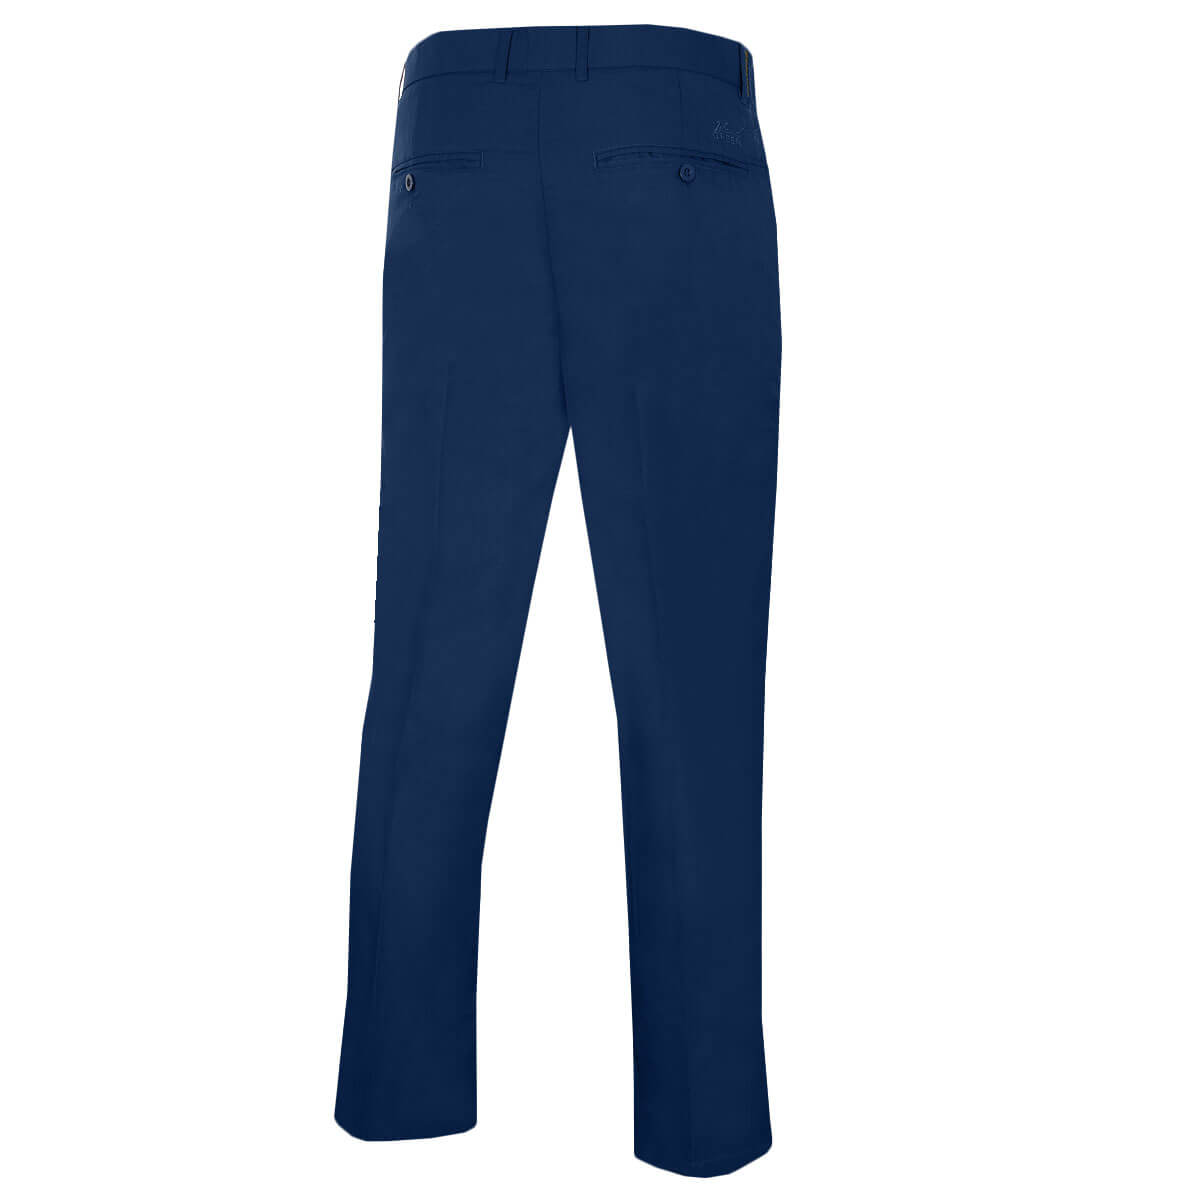 Island-Green-Breathable-Tapered-Slim-Fit-Mens-Golf-Trousers-47-OFF-RRP thumbnail 11